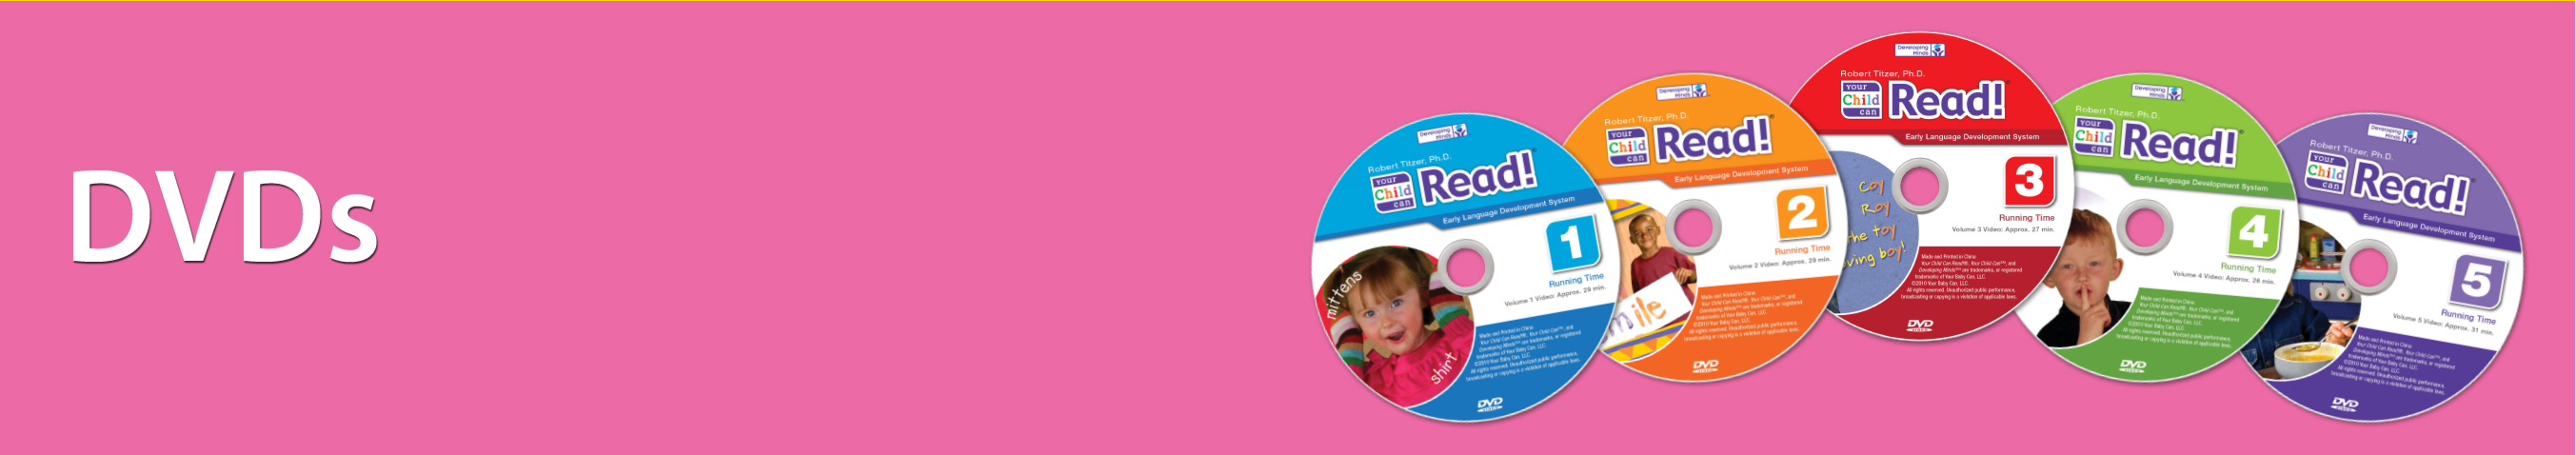 Your Child Can Read DVDs